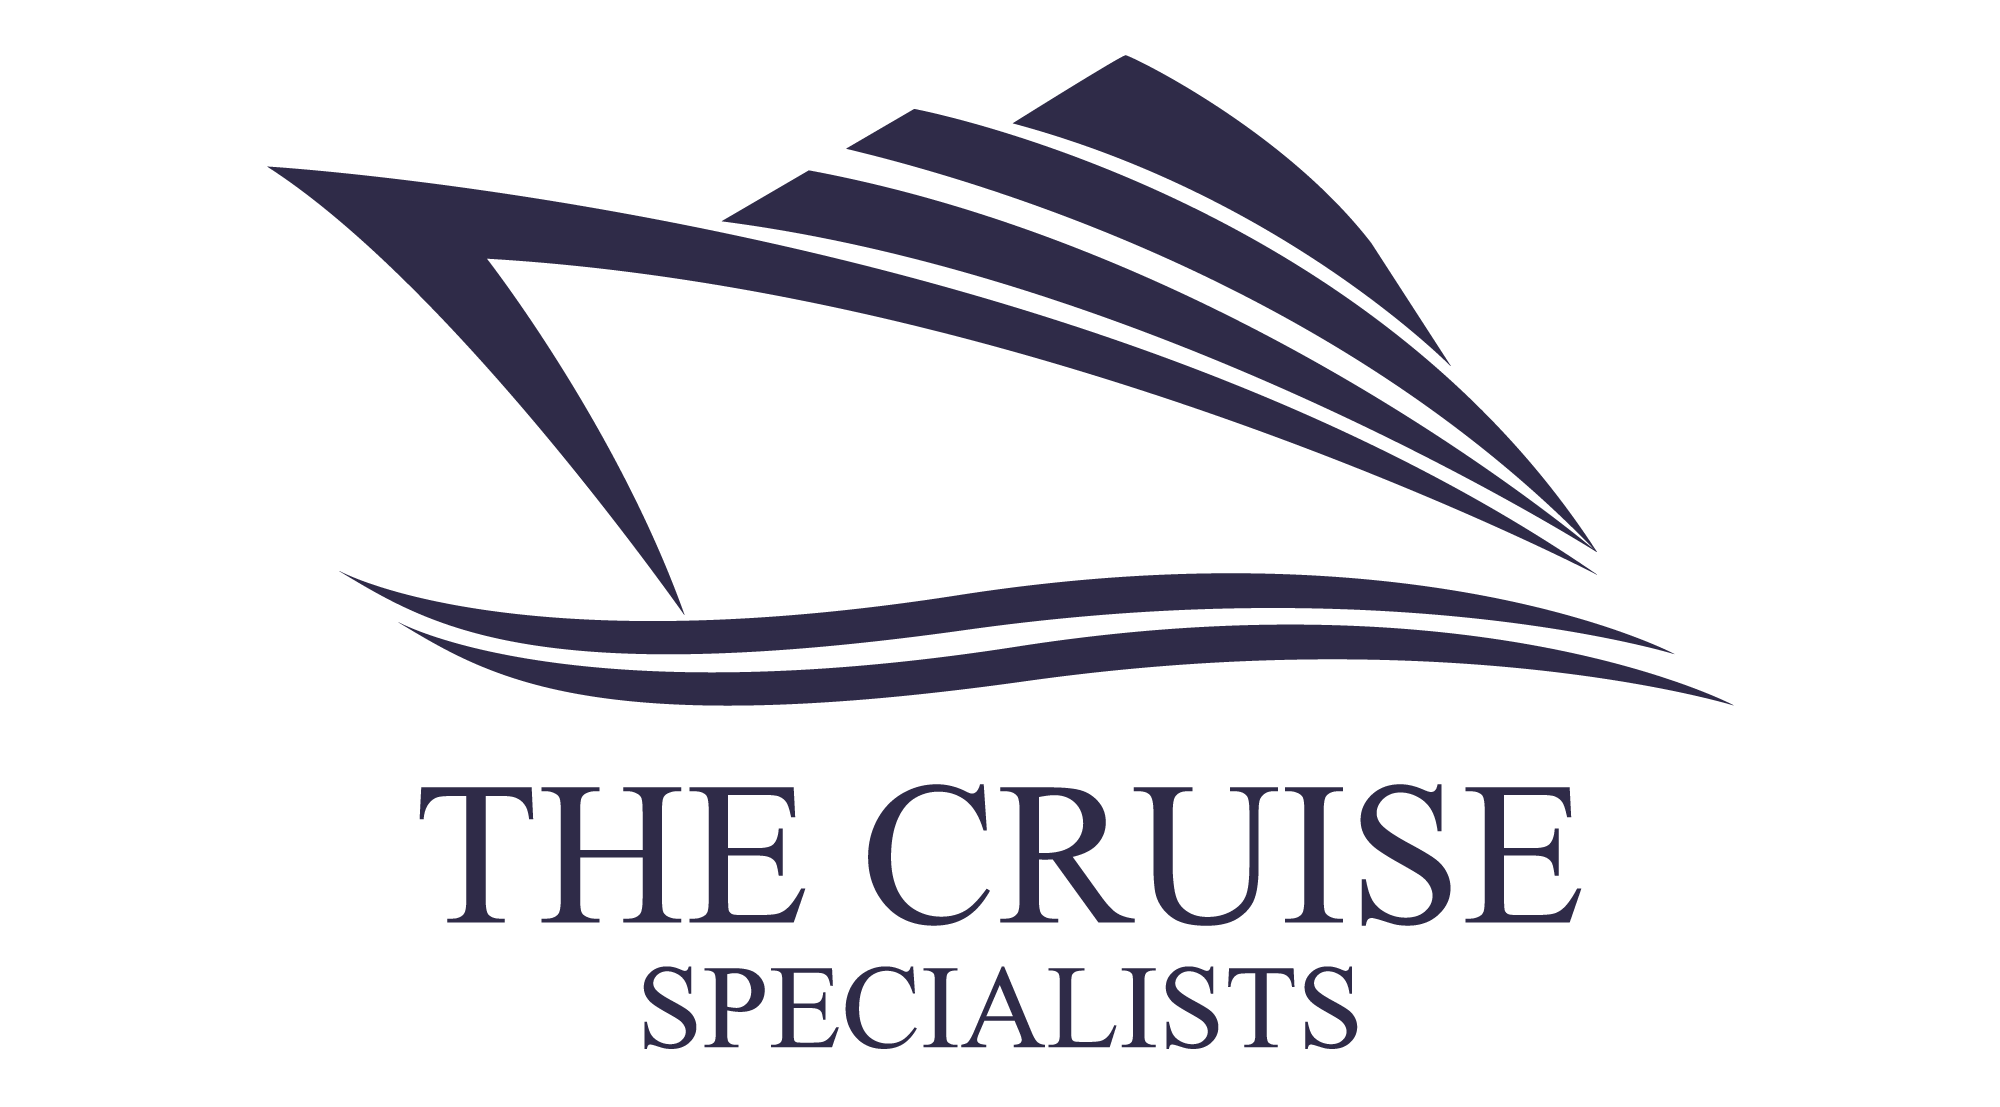 Read The Cruise Specialists Reviews